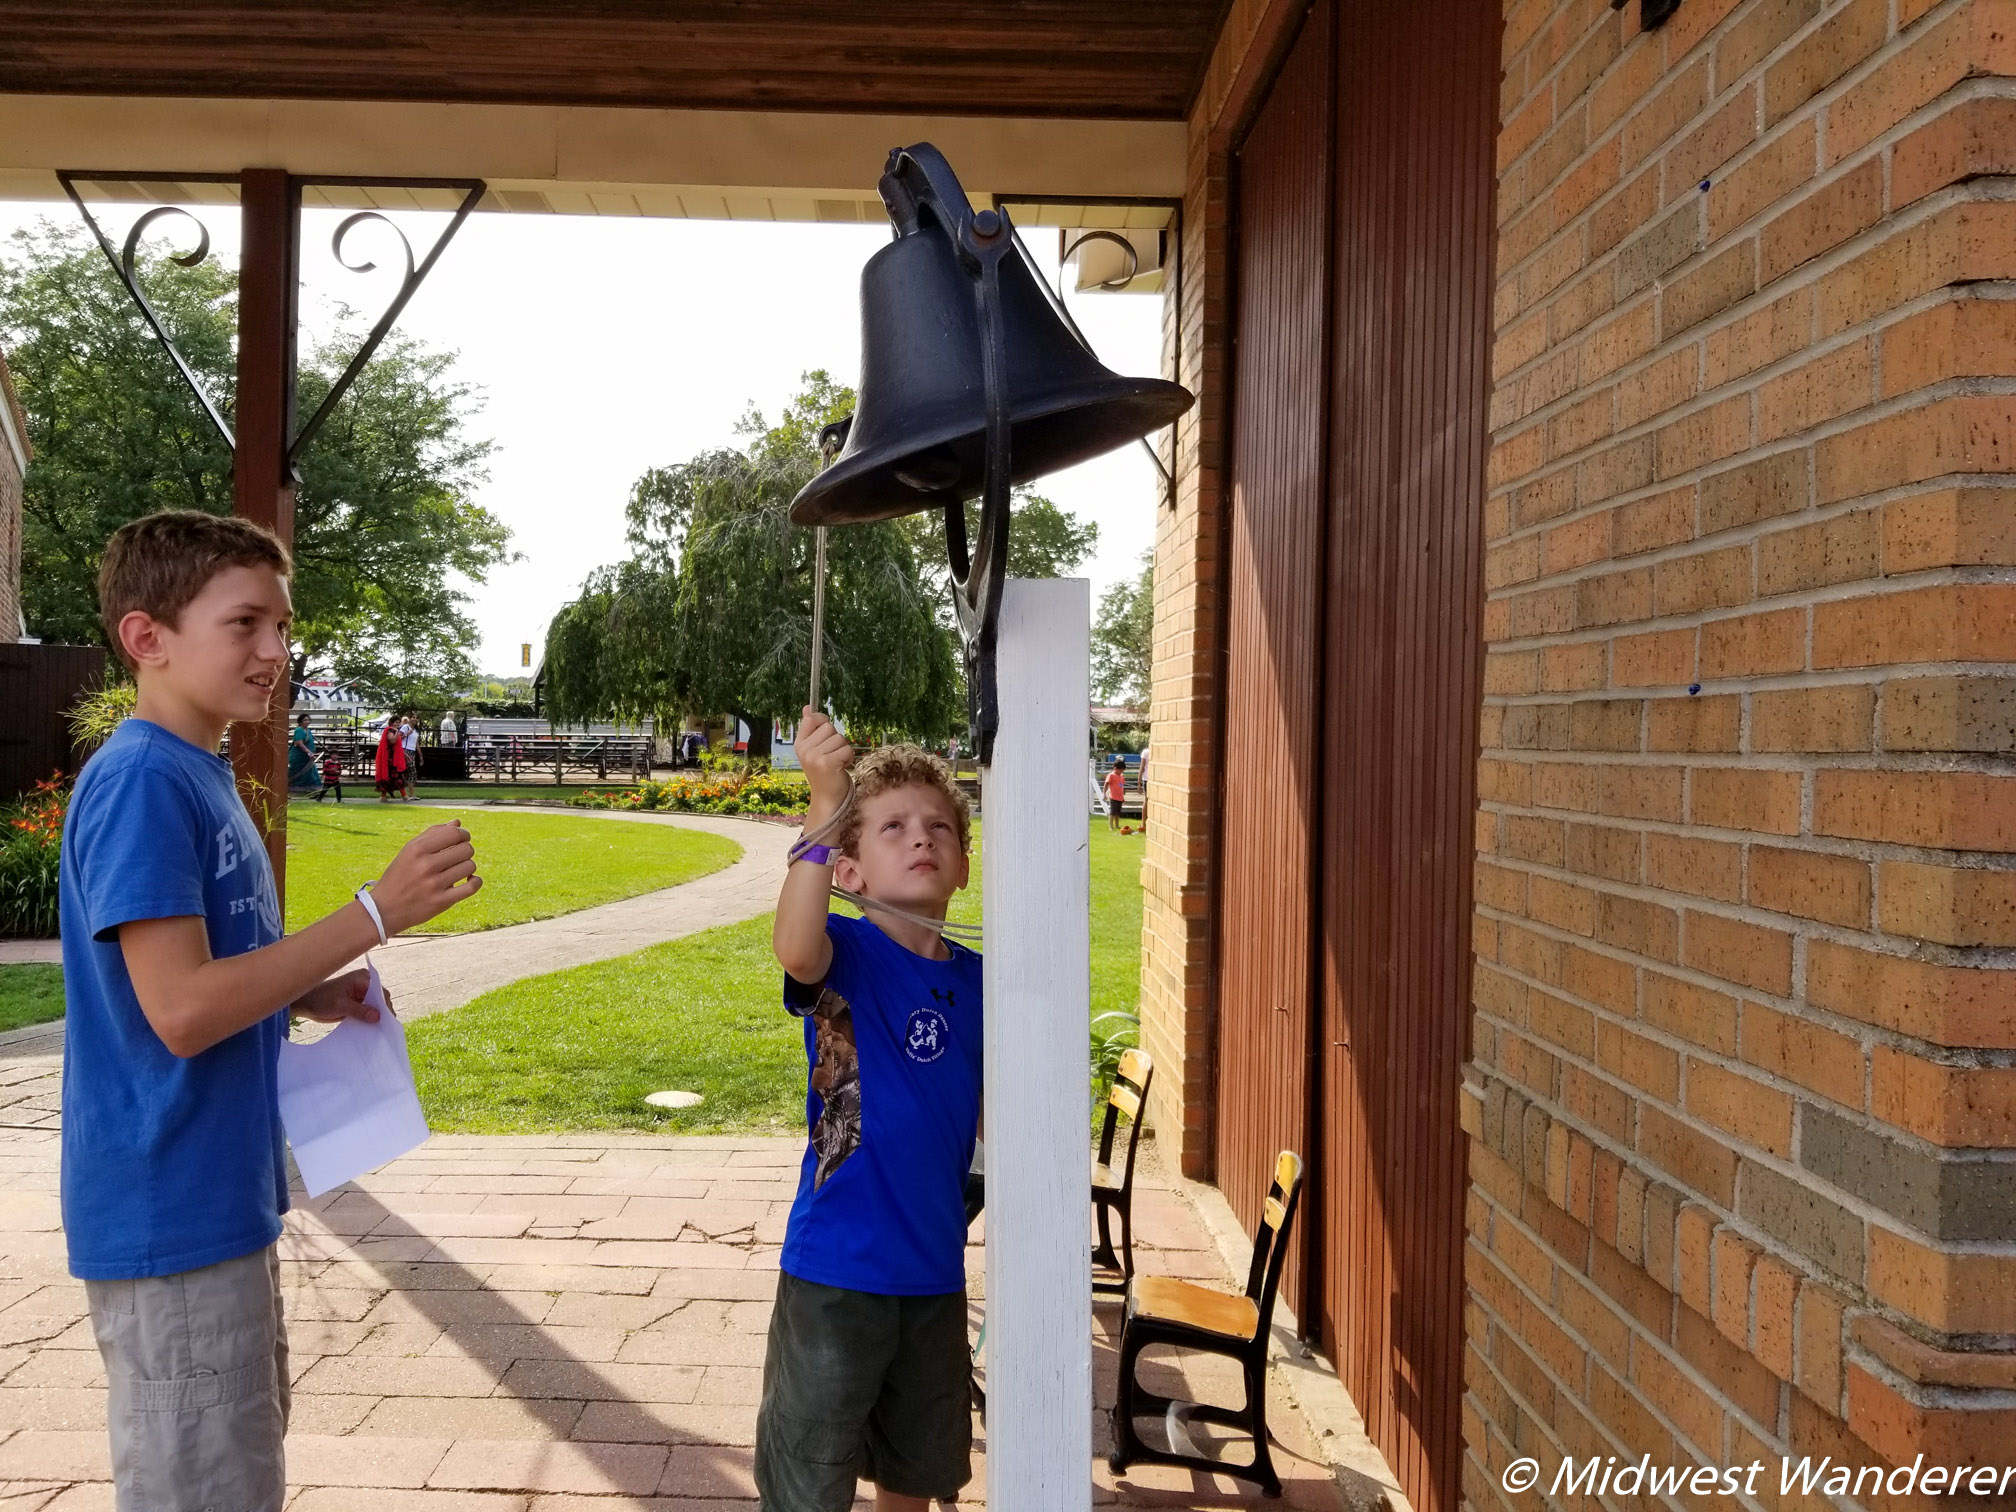 Ringing the school bell